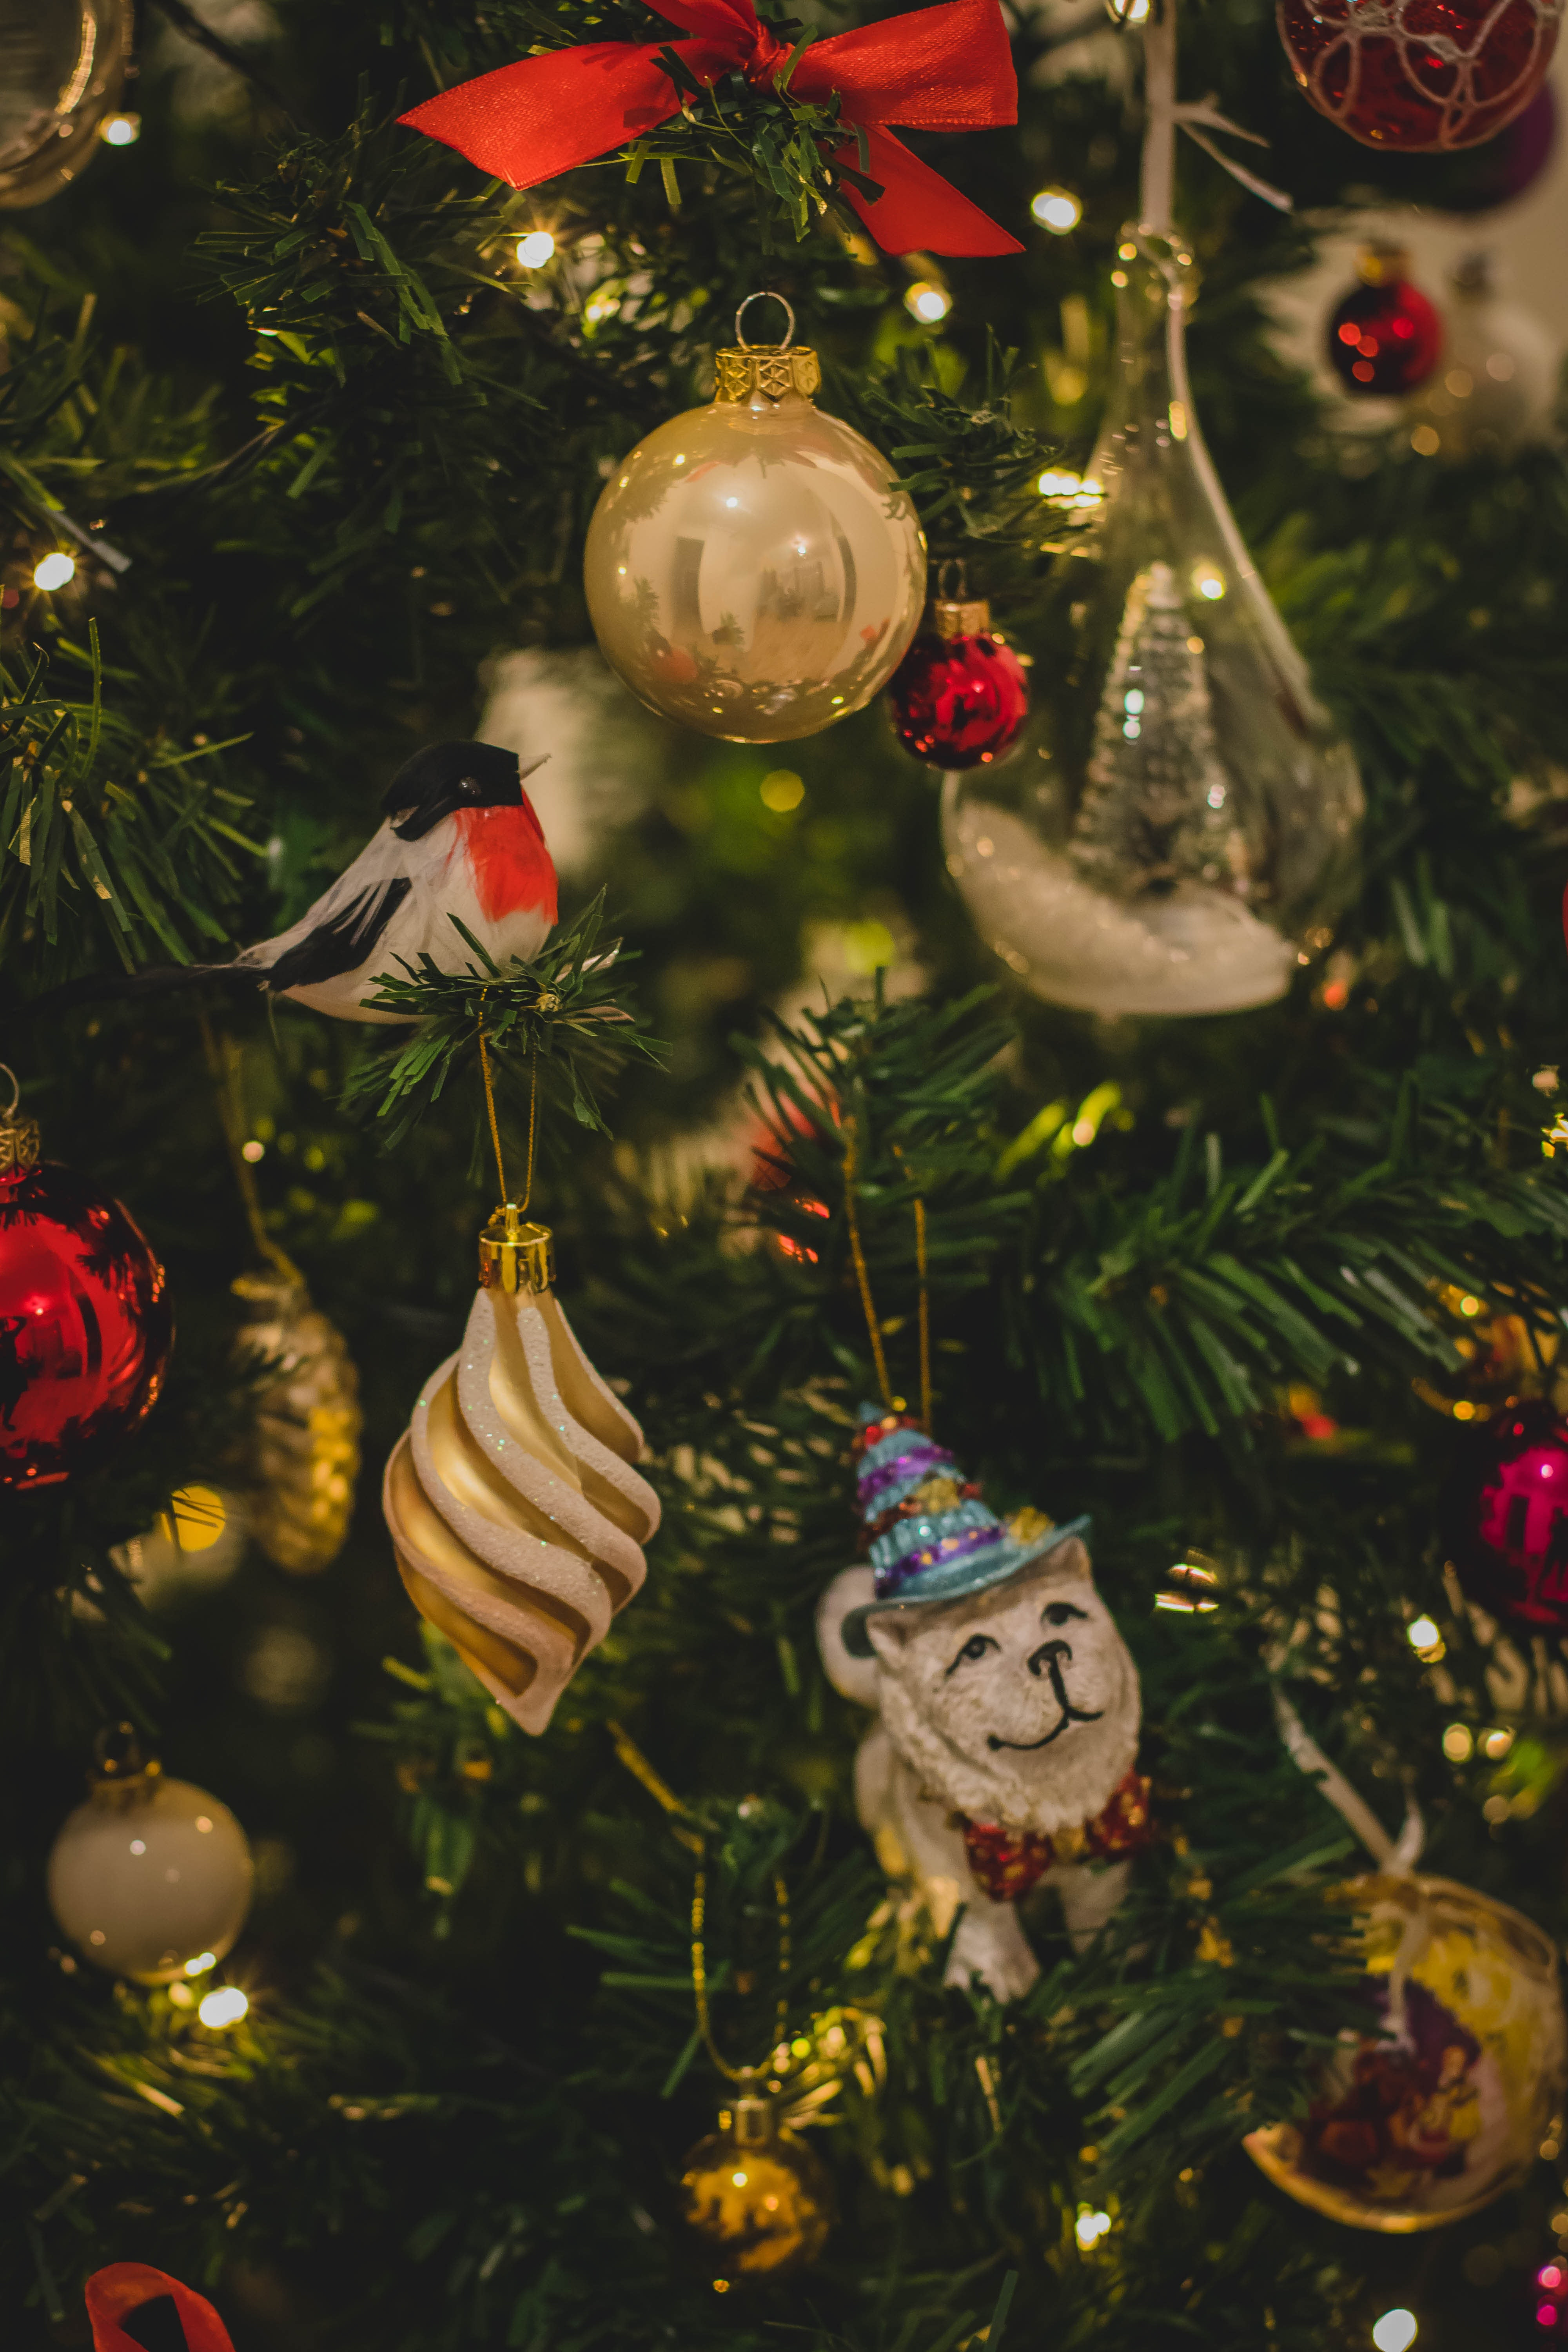 Assorted Ornaments on Christmas Tree, Balls, Golden, Threads, Sphere, HQ Photo